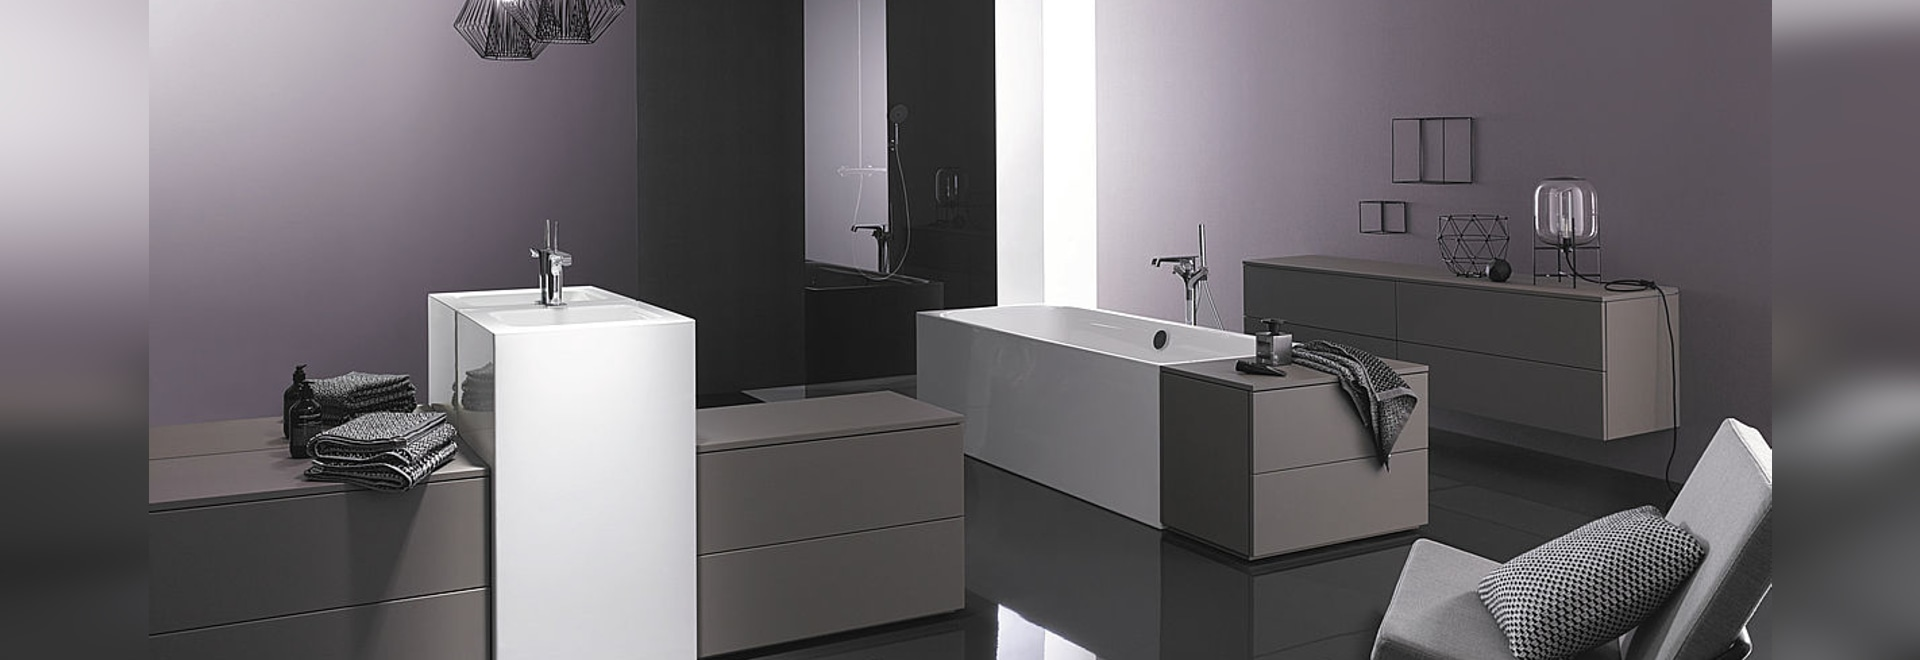 Good Quality Bathroom Furniture. Bettemodules High Quality Bathroom Furniture In An Intelligent Modular Design